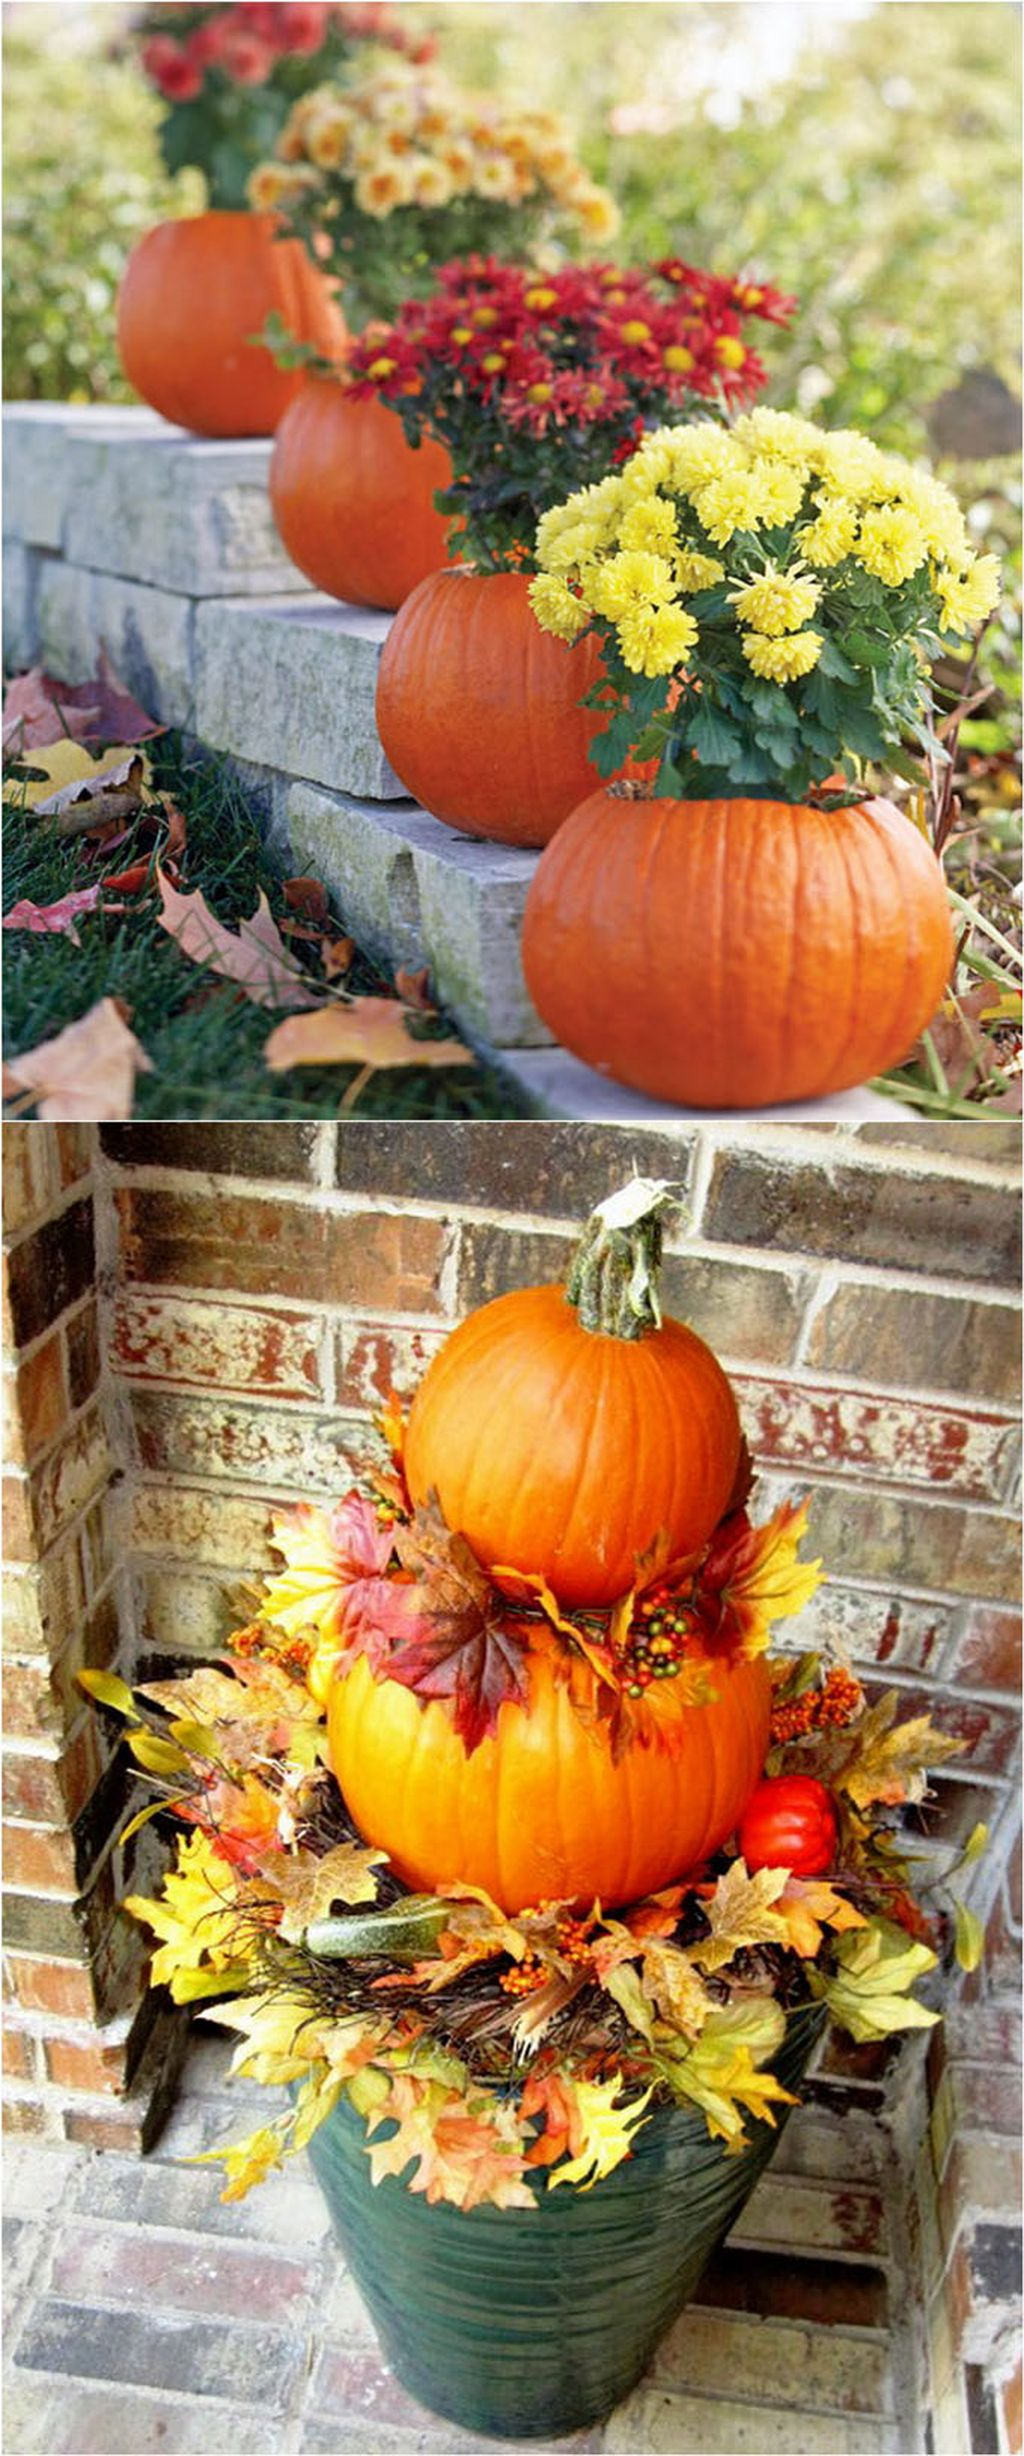 Easy But Inspiring Outdoor Fall Decoration Ideas 56